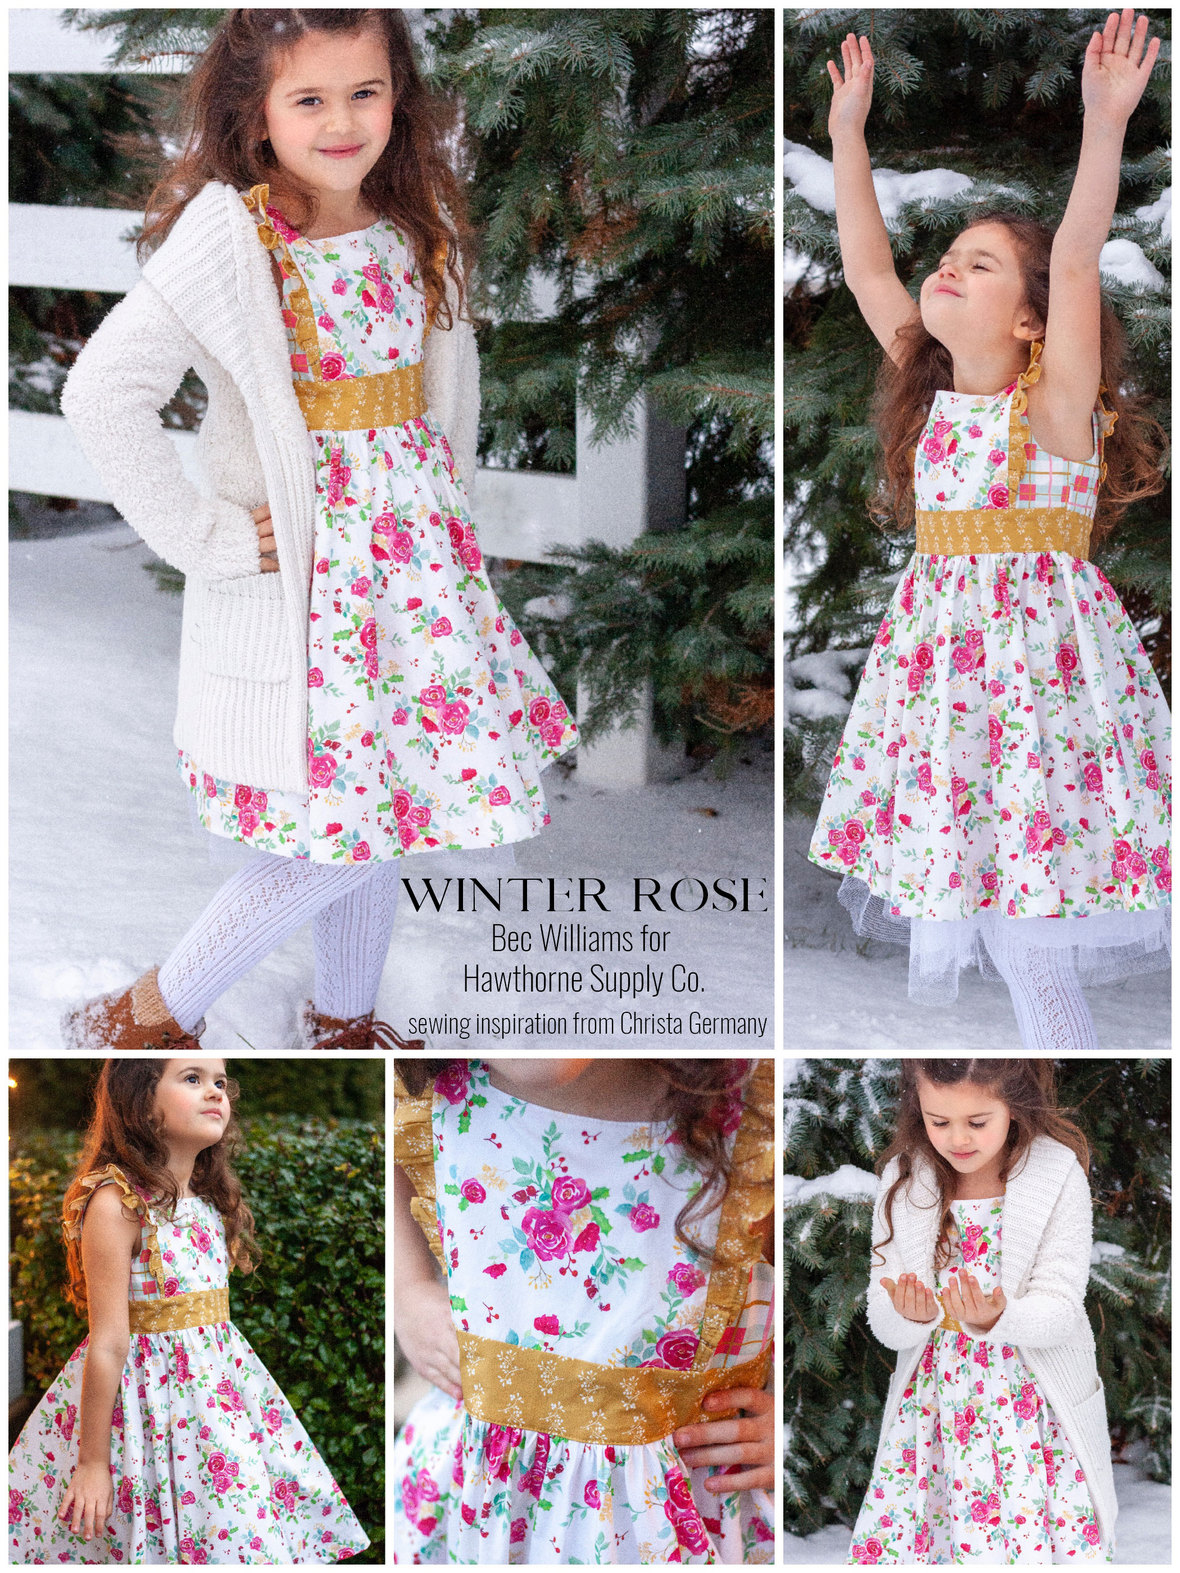 Winter-Rose-Fabric-Christmas-Dress-Bec-Williams-at-Hawthorne-Supply-Co